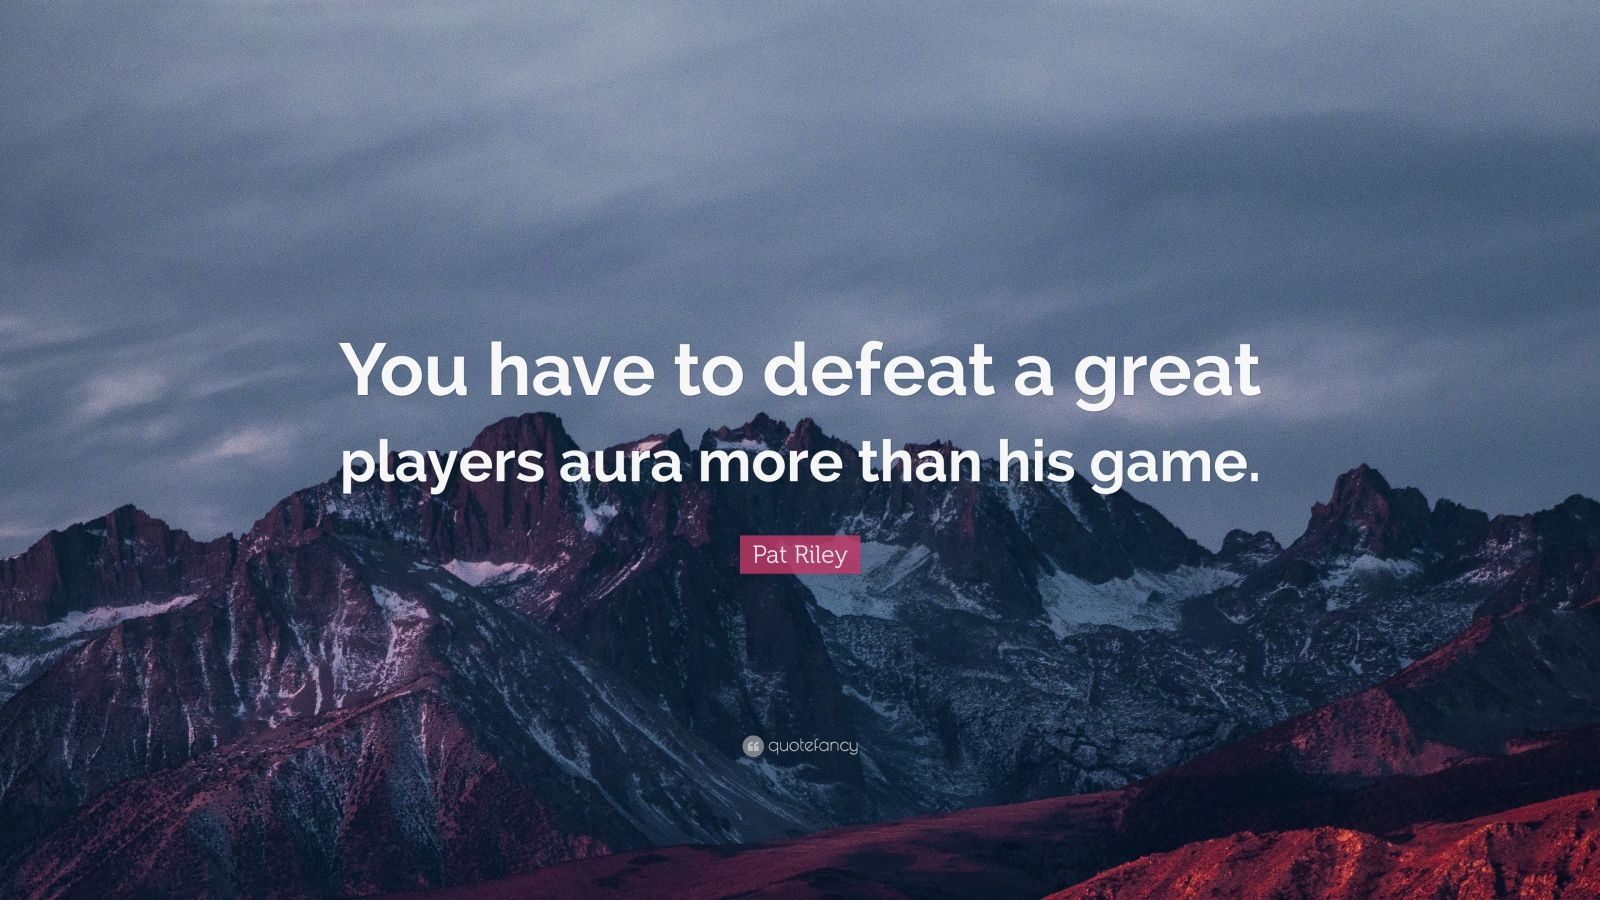 """Pat Riley Quote: """"You have to defeat a great players aura more than his game."""""""